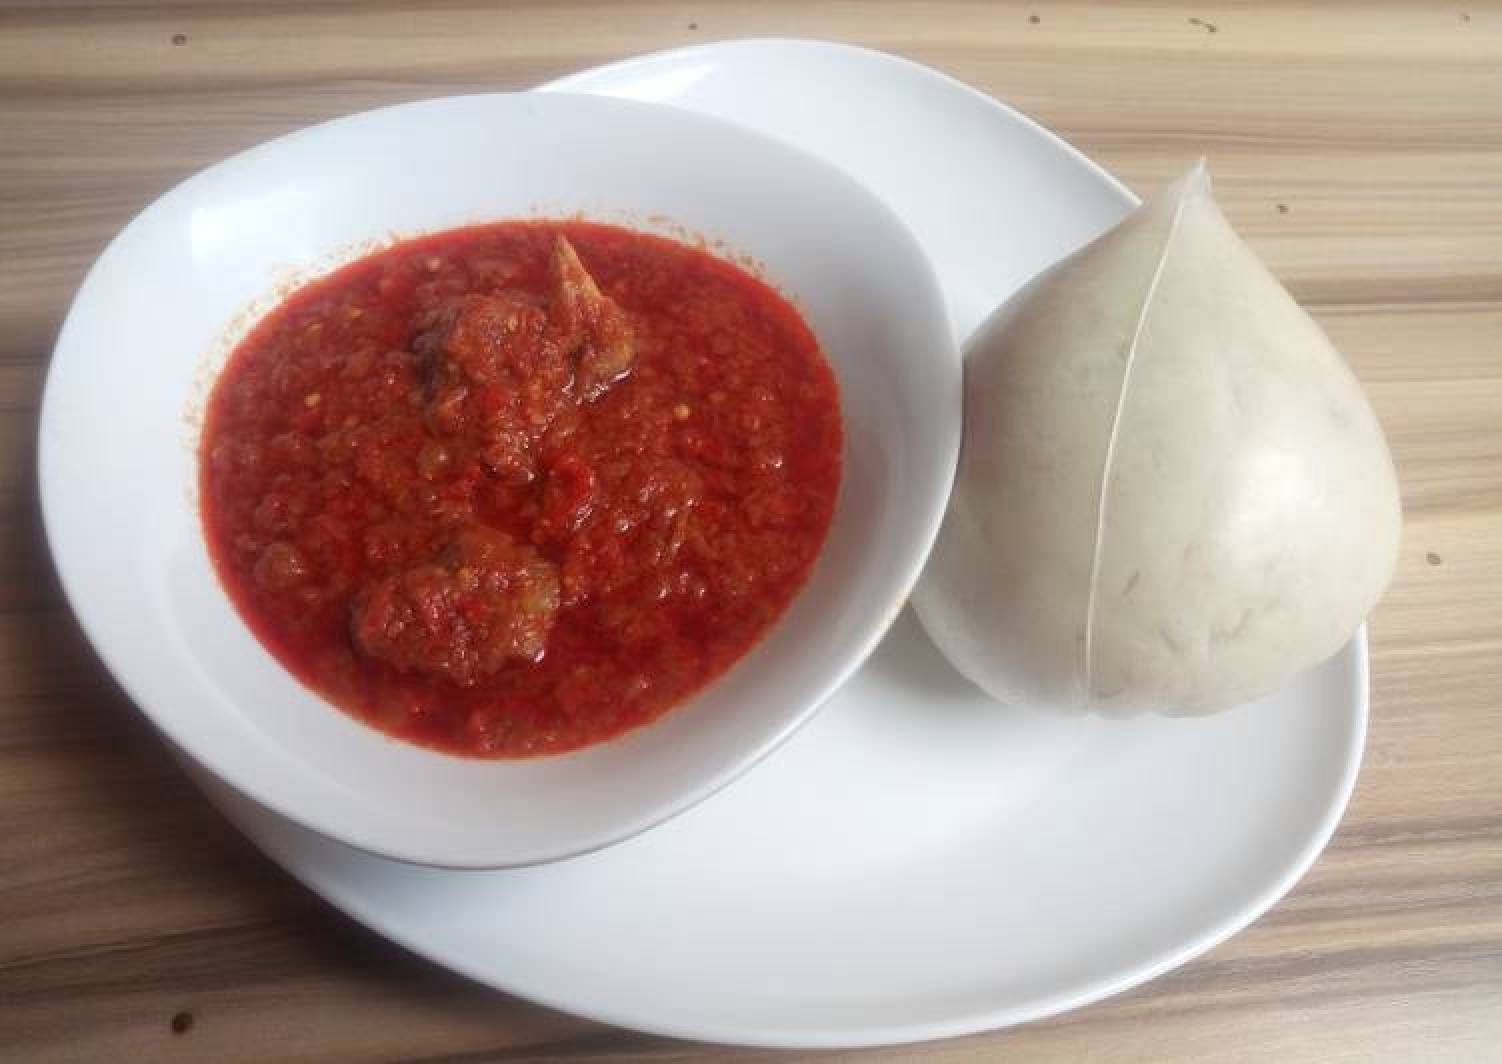 Pounded yam with stew